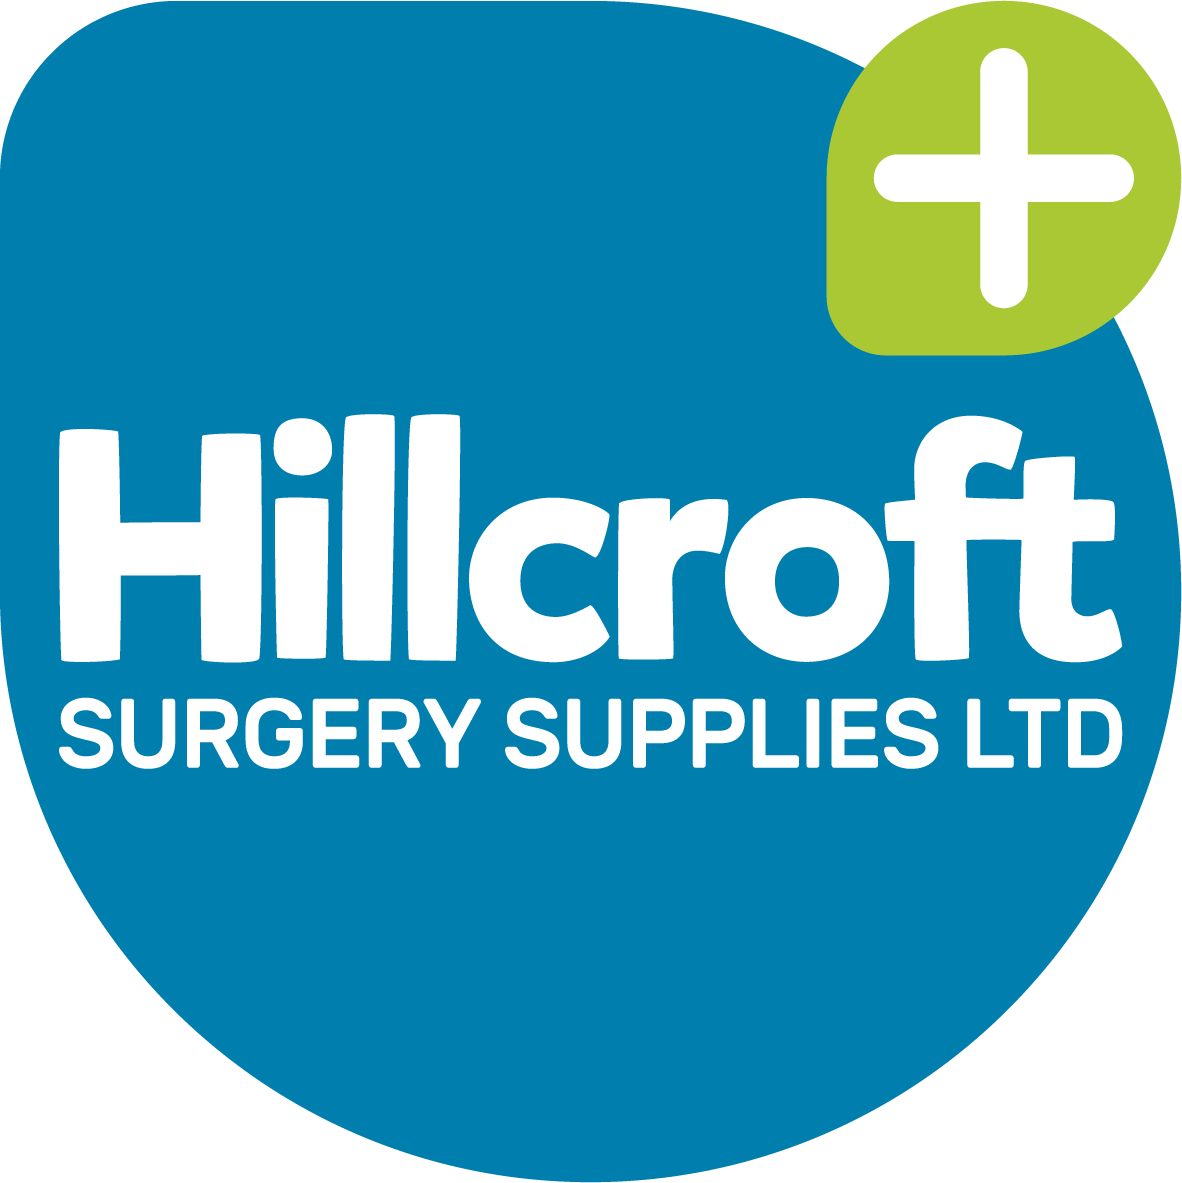 Read Hillcroft Surgery Supplies Ltd Reviews